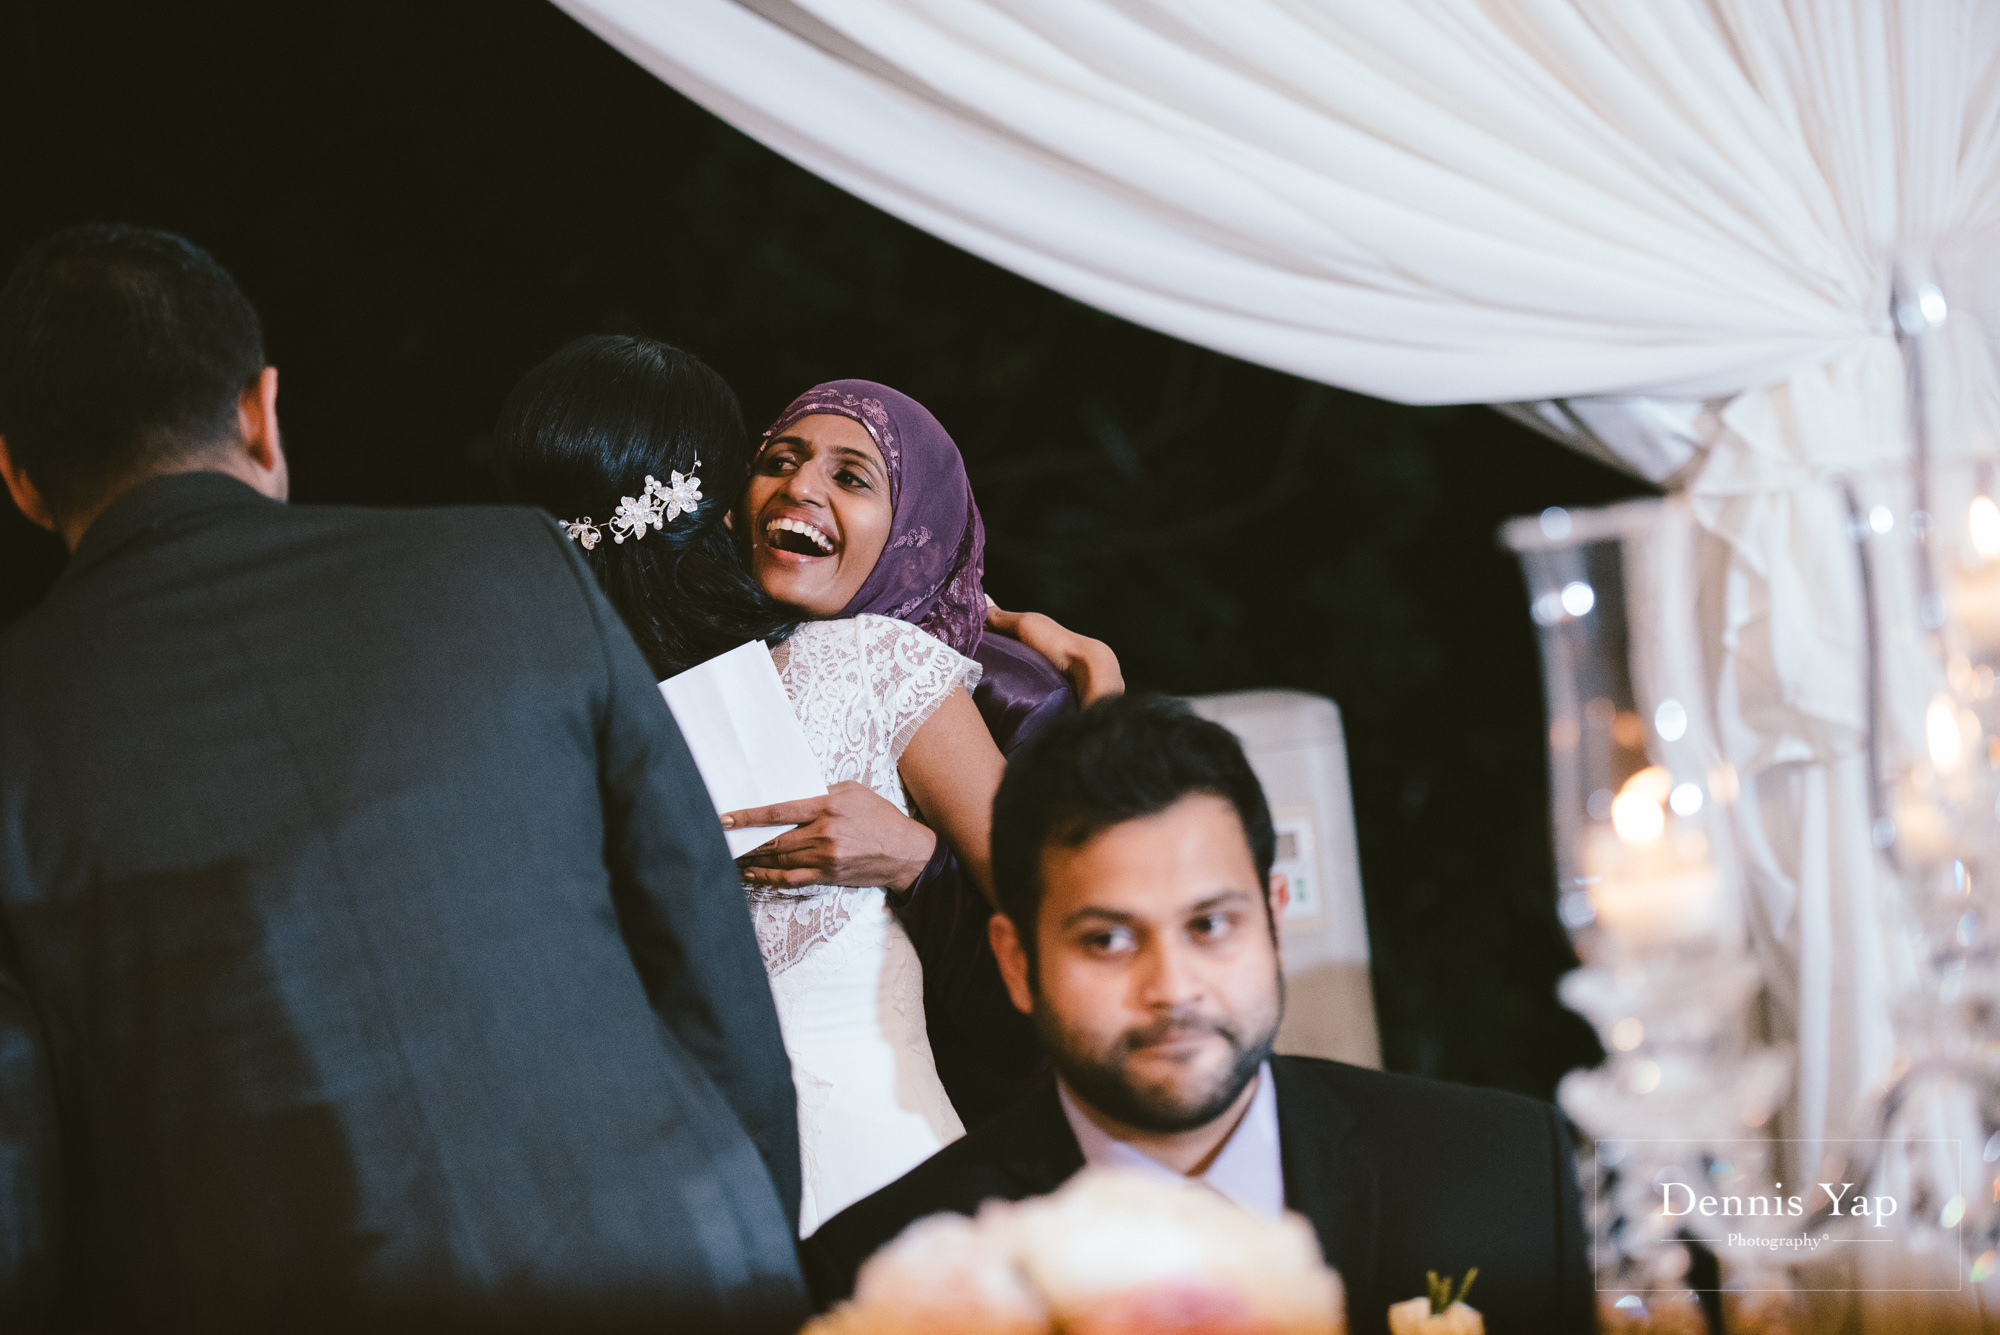 javed zenysha muslim wedding ceremony seri carcosa negara dennis yap photography maldives couple-39.jpg